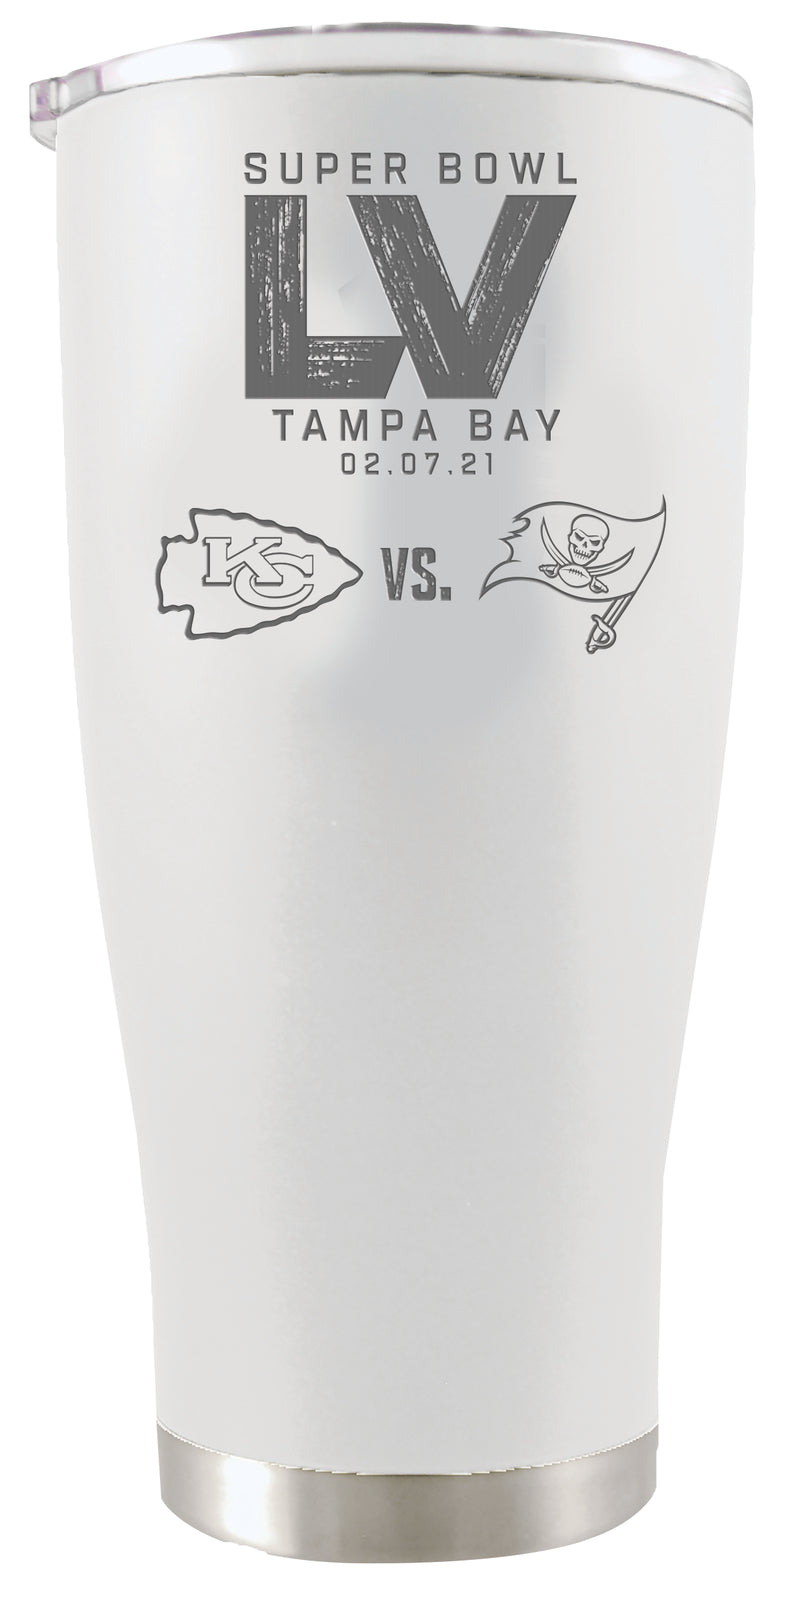 Super Bowl LV Dueling 20oz White Stainless Steel Etched Tumbler